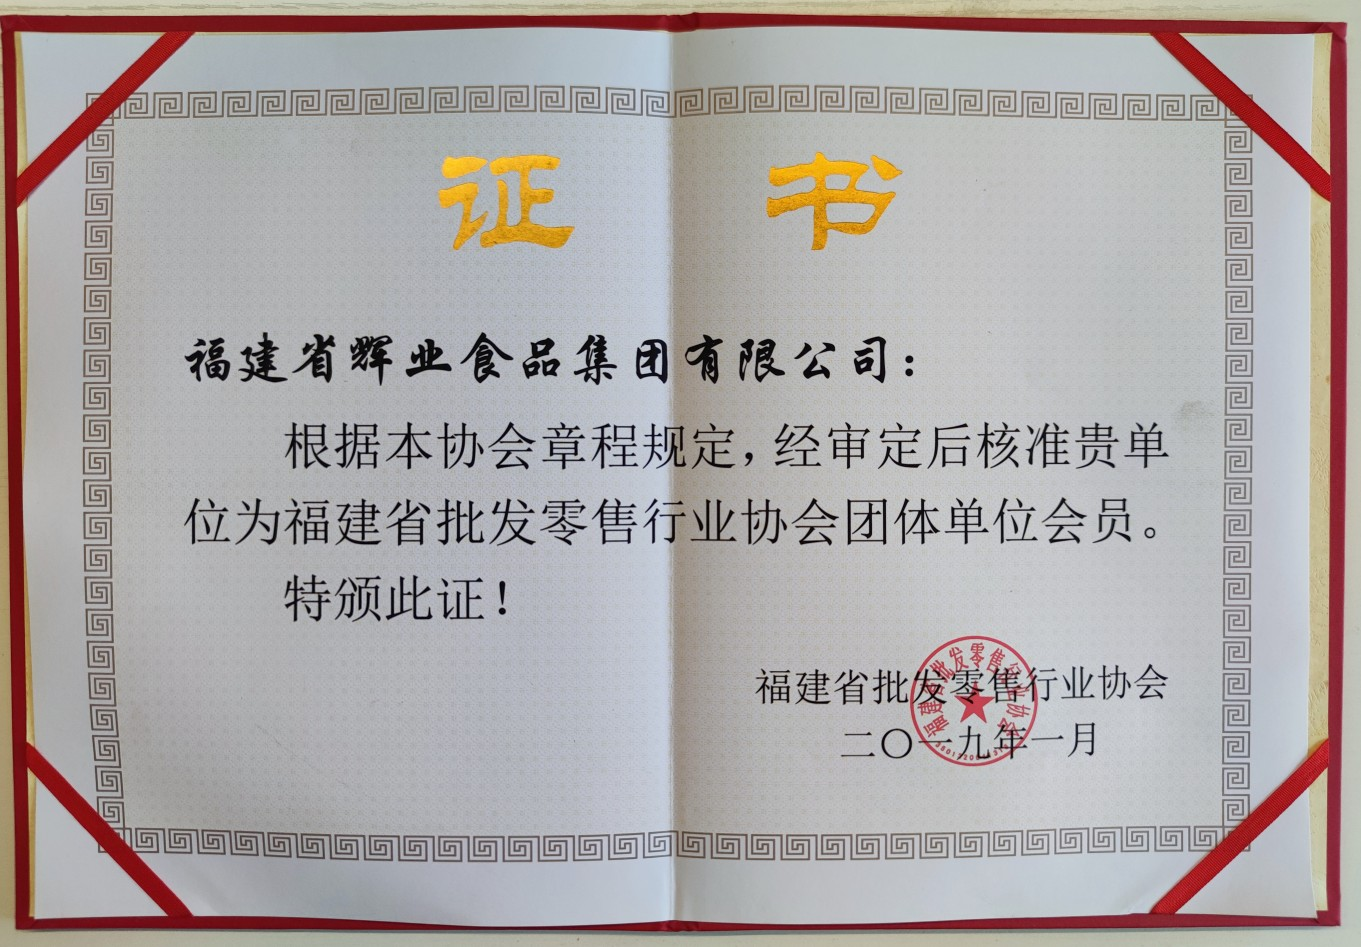 """<strong><span style=""""font-size:14px;"""">省批发零售行业协会会员</span></strong>"""